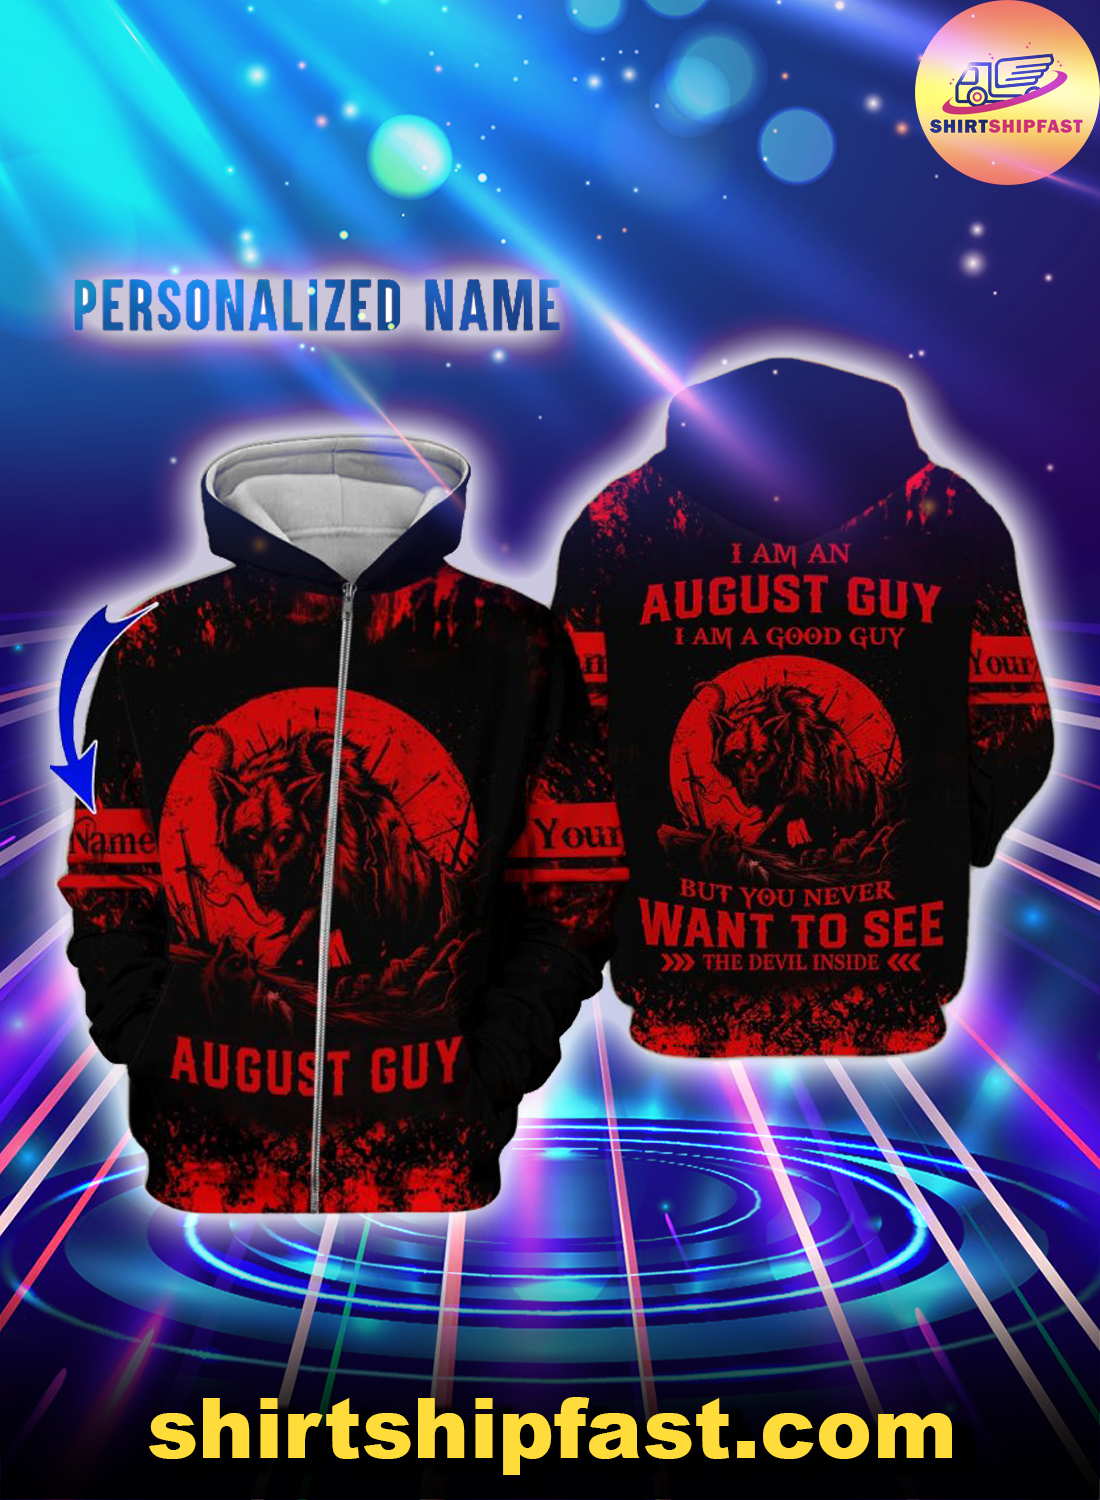 Personalized name I am a August guy I am a good guy but you never want to see the devil inside 3d zip hoodie